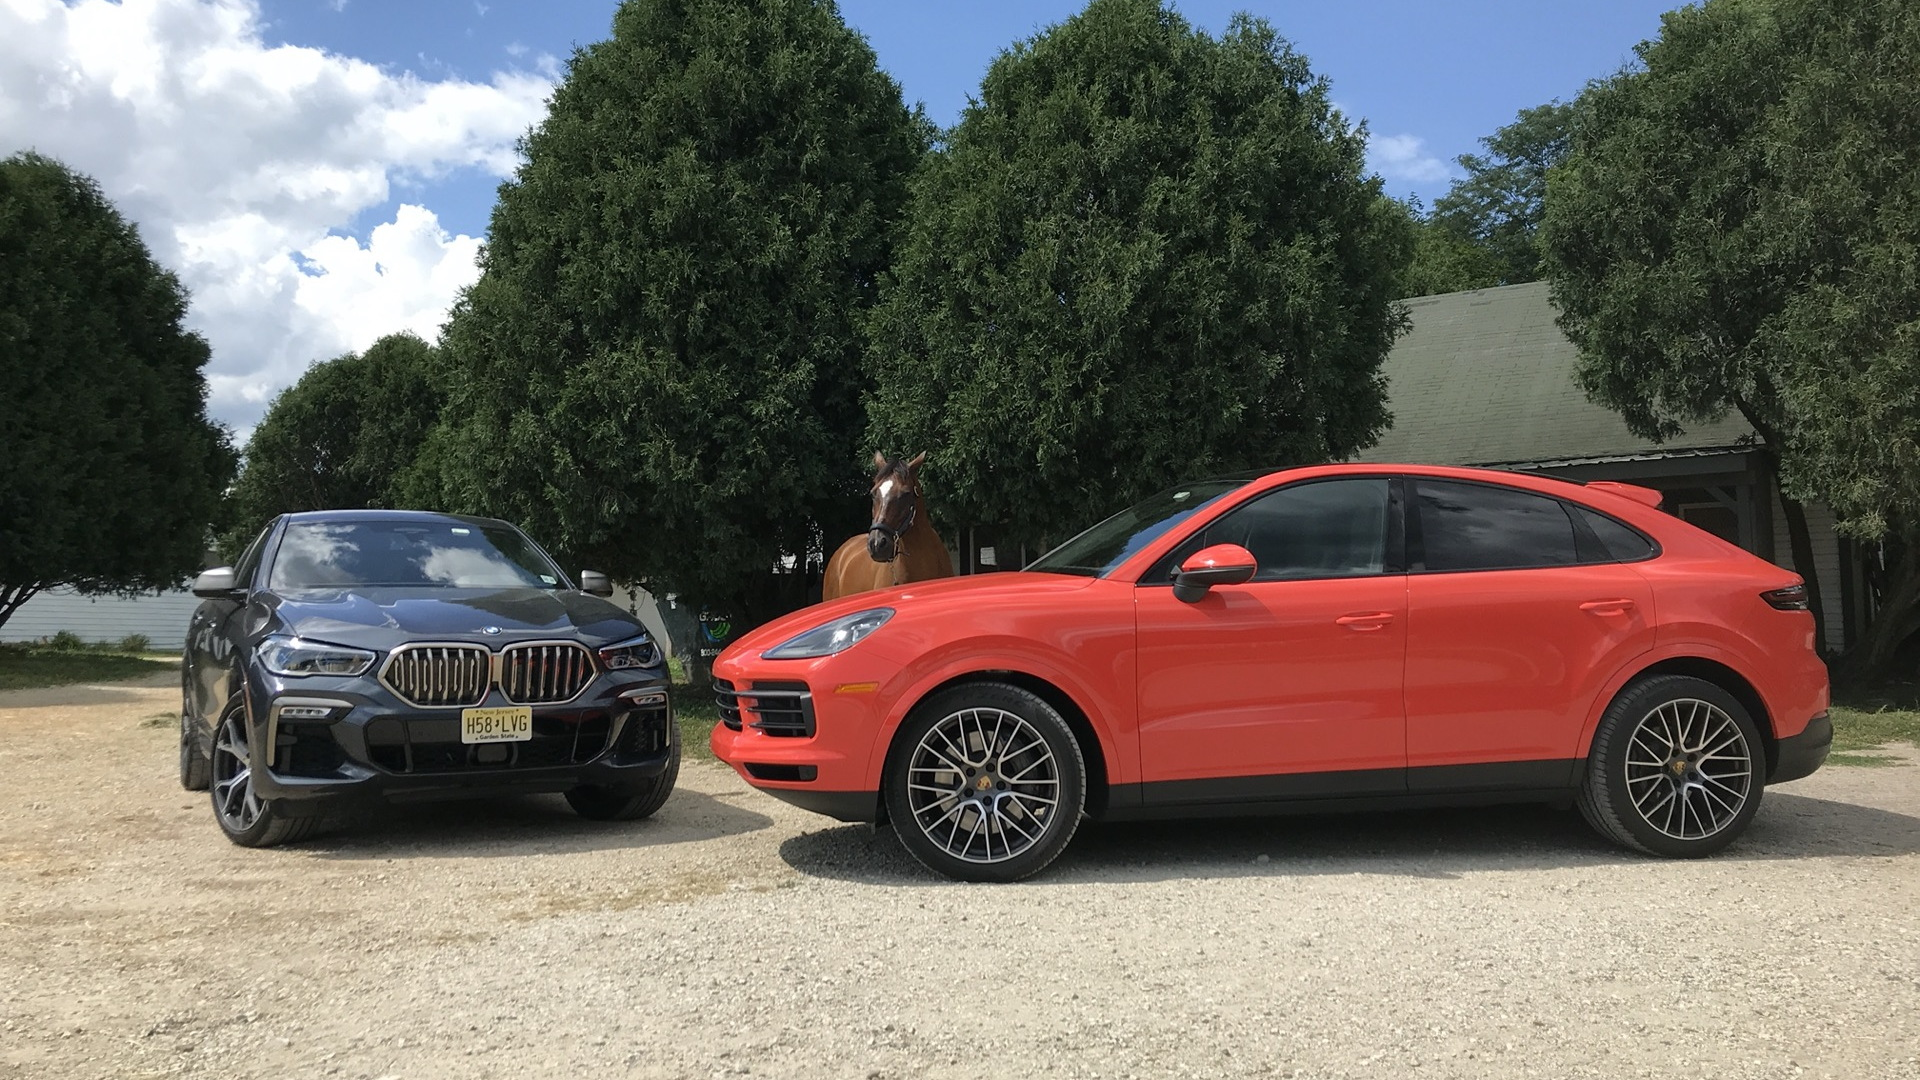 2020 BMW X6 M50i, left, and 2020 Porsche Cayenne Coupe S, right